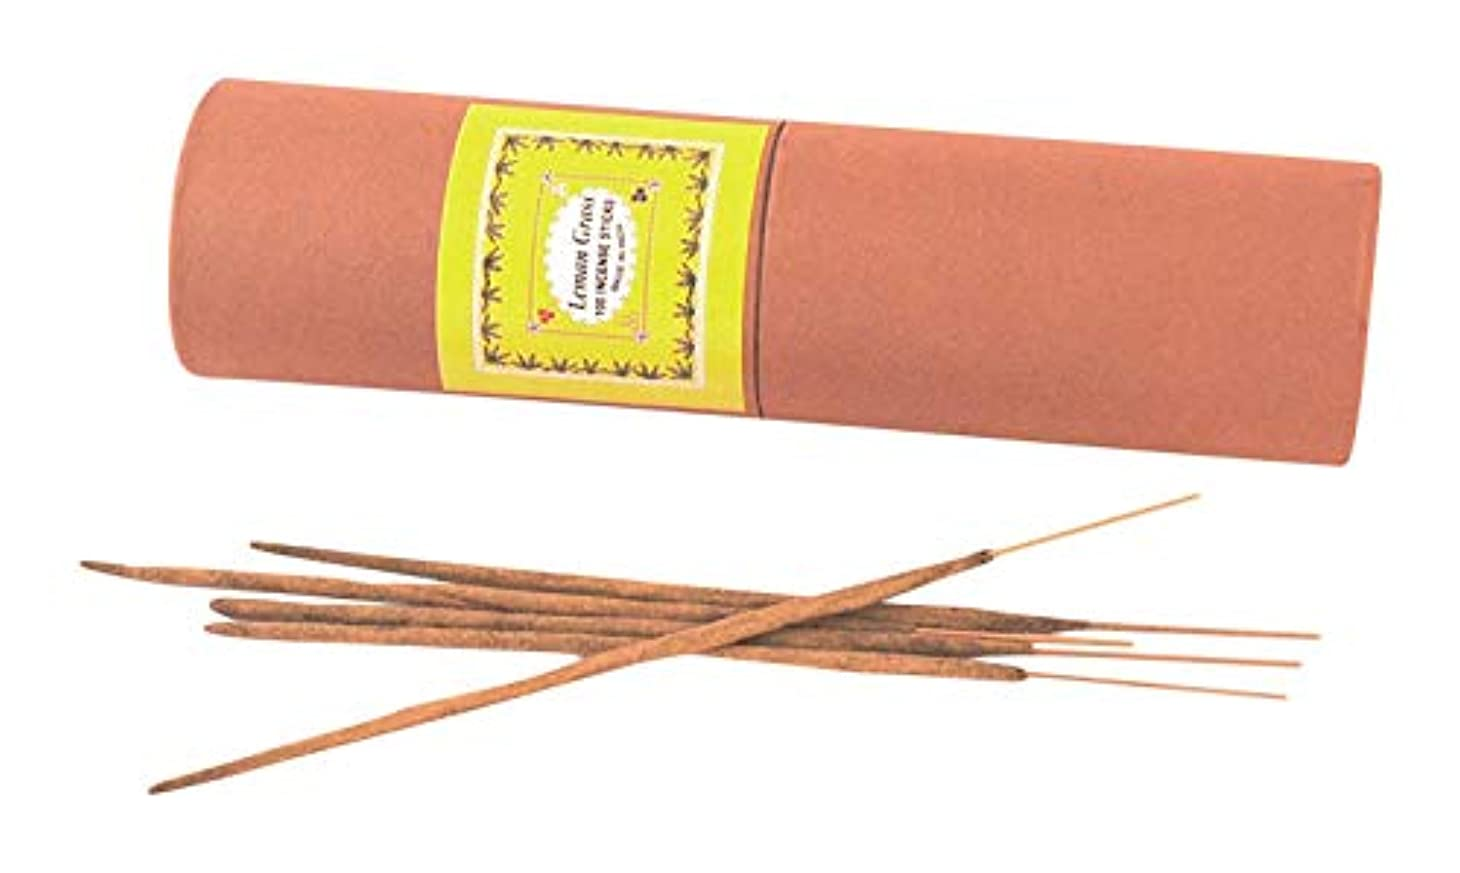 居心地の良いフェードアウト病院My Earth Store Lemon Grass Hand Made Incense Stick (4 cm x 4 cm x 24 cm, Green)